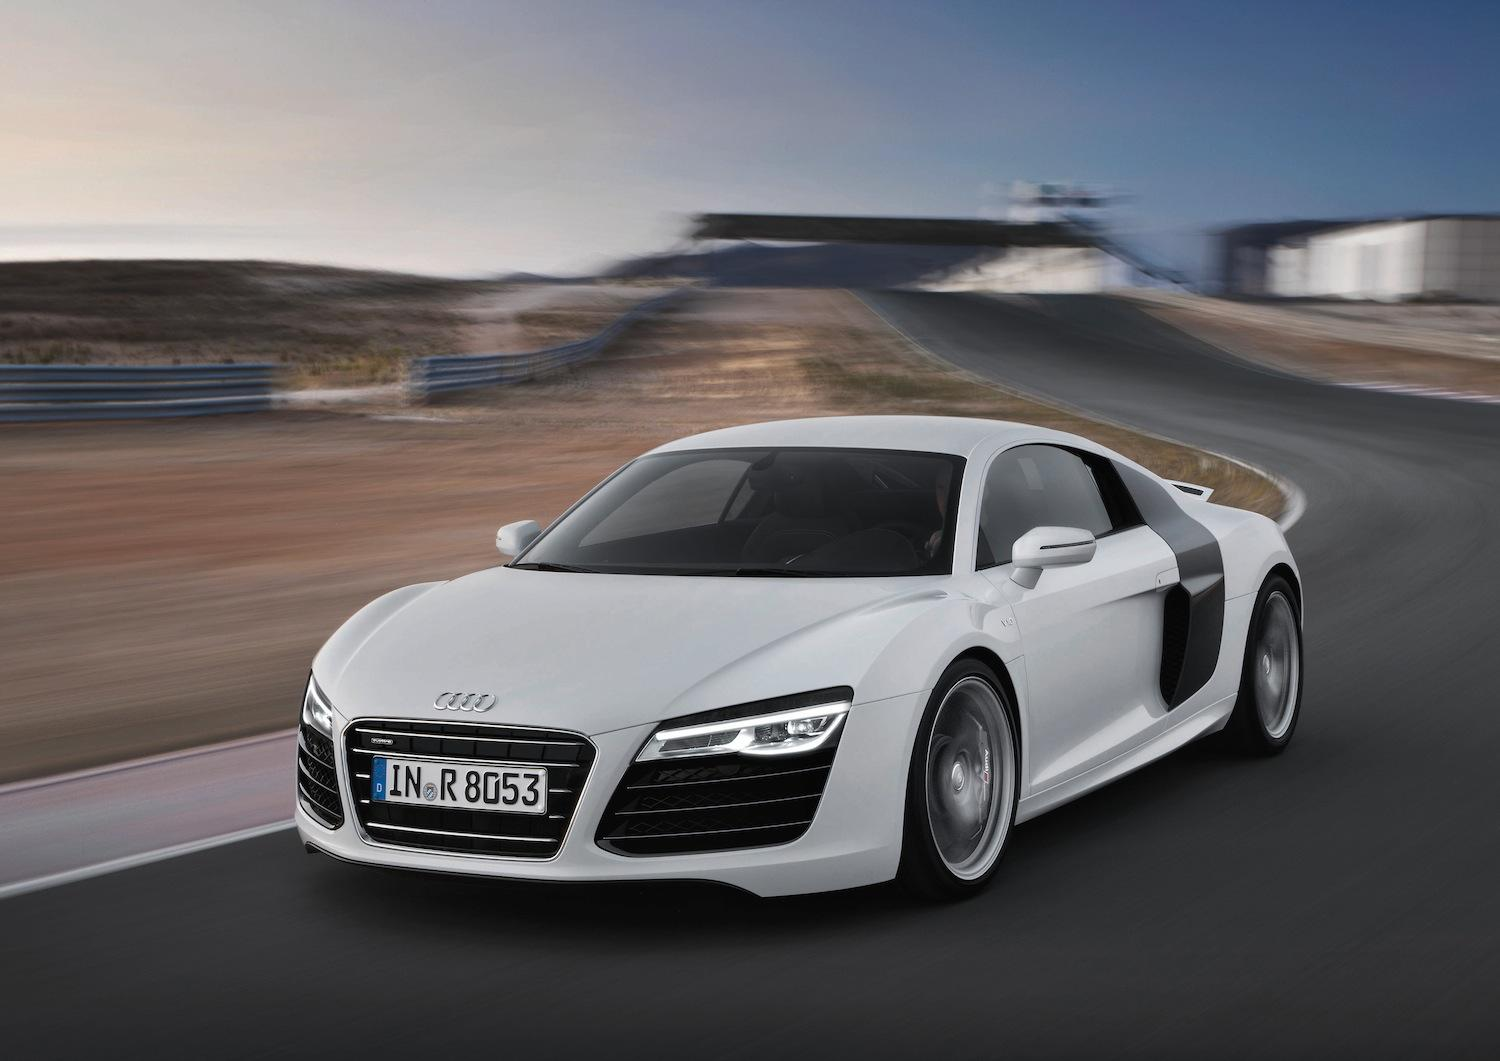 Cars Audi Roads R8 White V10 Wallpaper Allwallpaper In: All-new Audi R8 Sent Back To R&D After Disappointing Boss